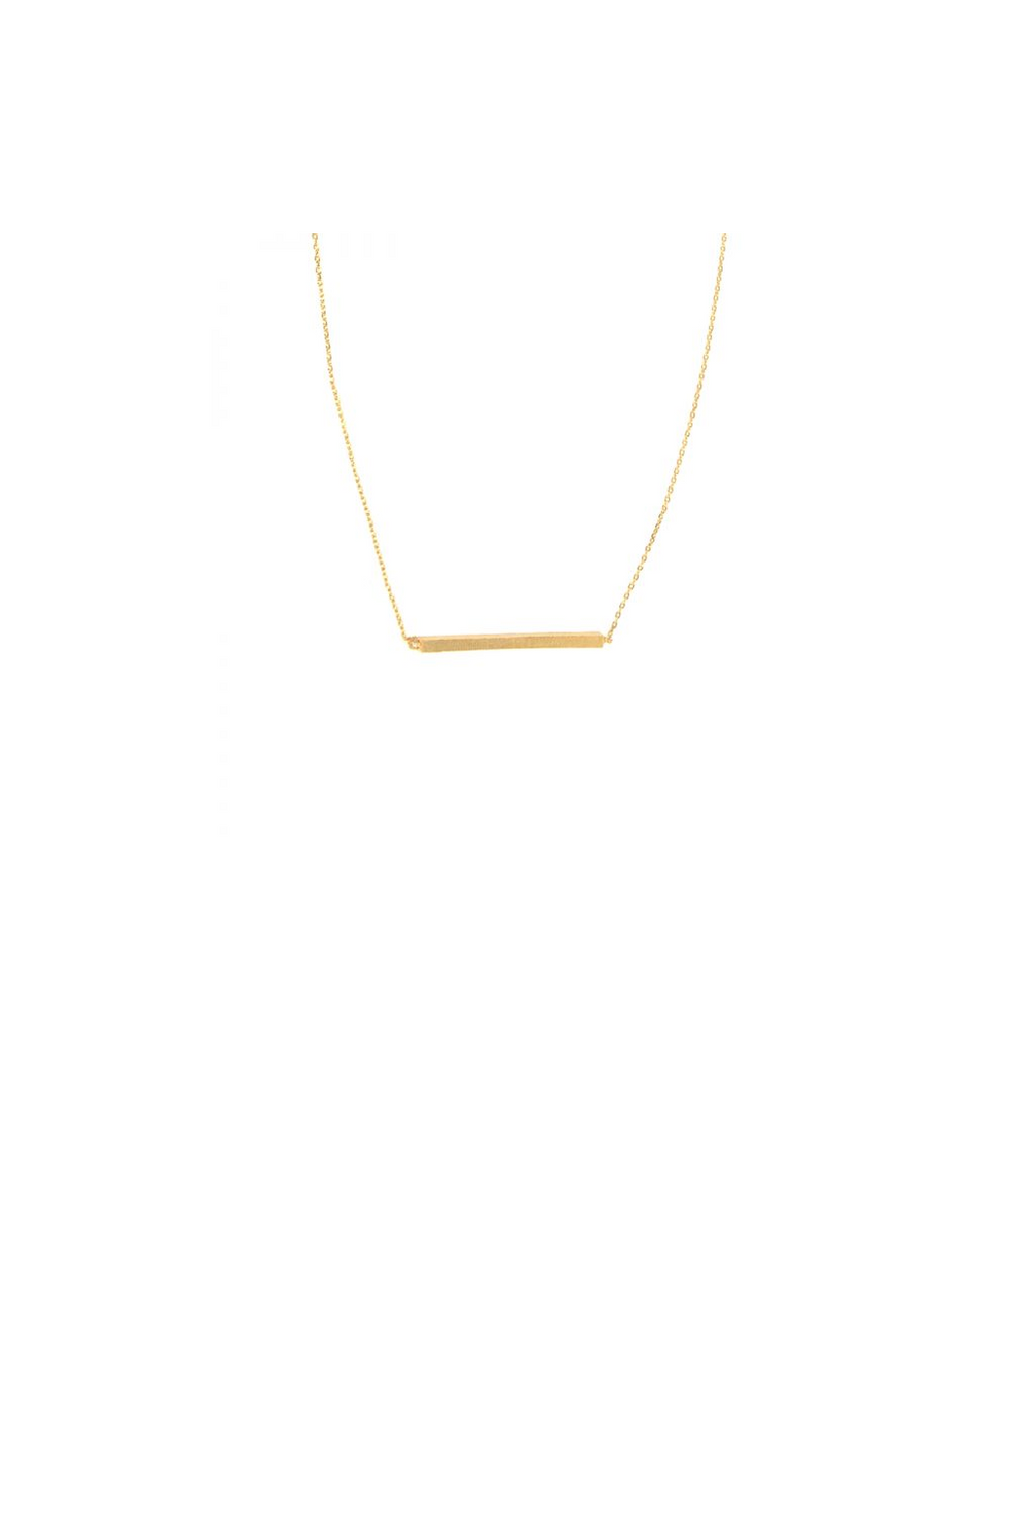 Textured Bar Necklace - Gold